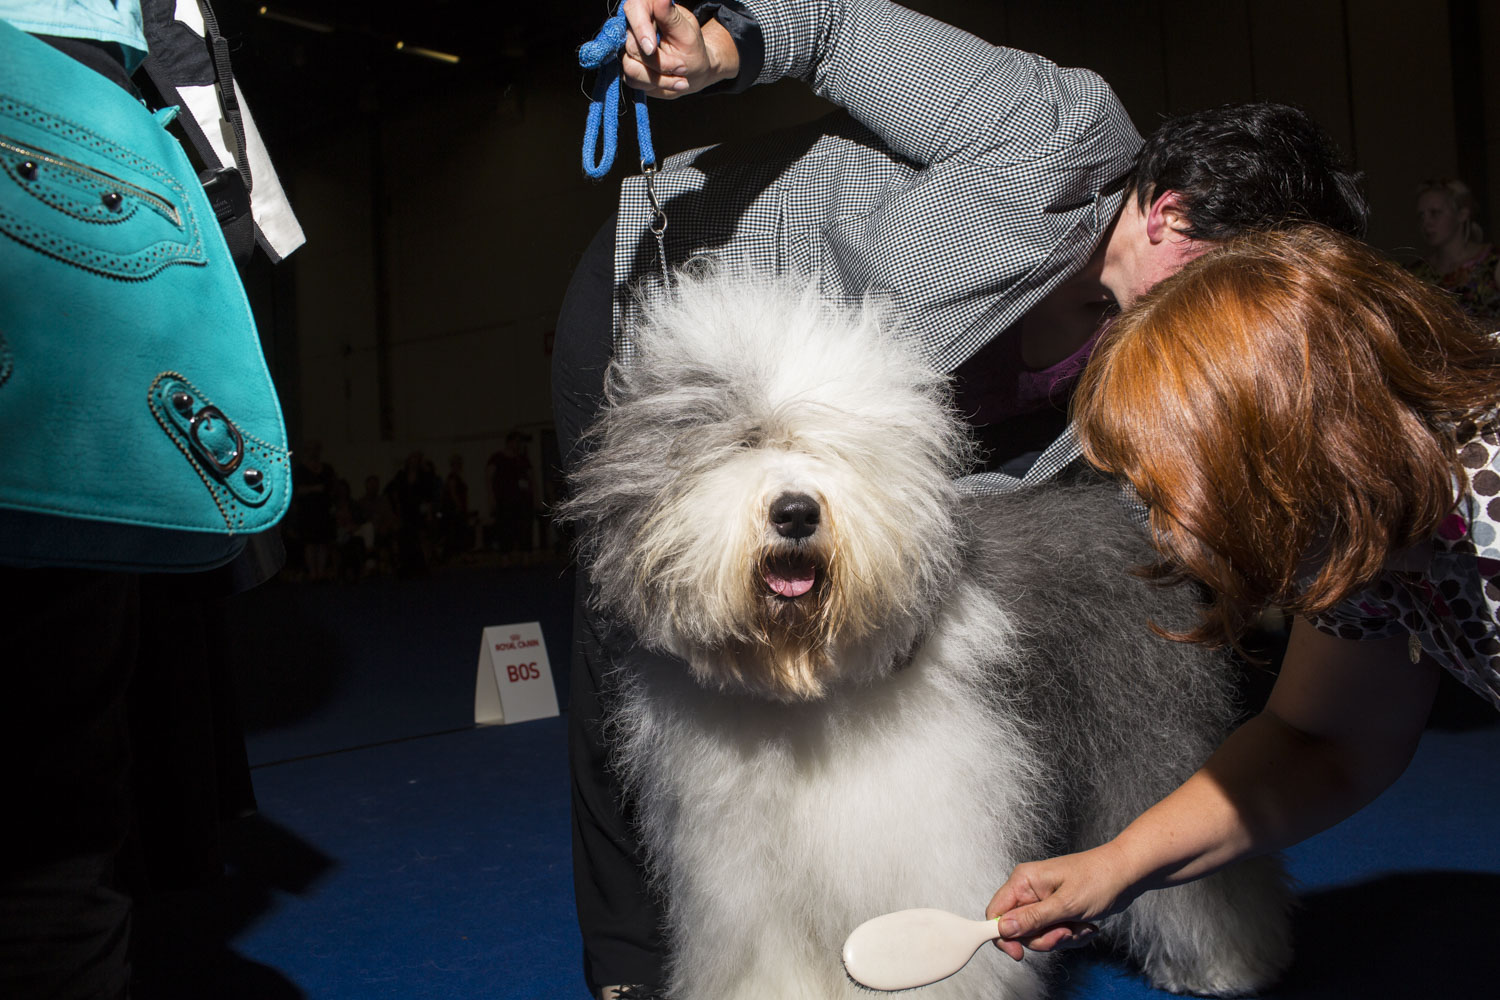 Nancy, a three year old female Old English Sheepdog is prepped for the official winning photo by her handler Elisabeth Antl, top, from Austria, and an assistant, after winning Best of Breed during the 2014 World Dog Show on Sunday, August 10th, 2014, in Helsinki, Finland.